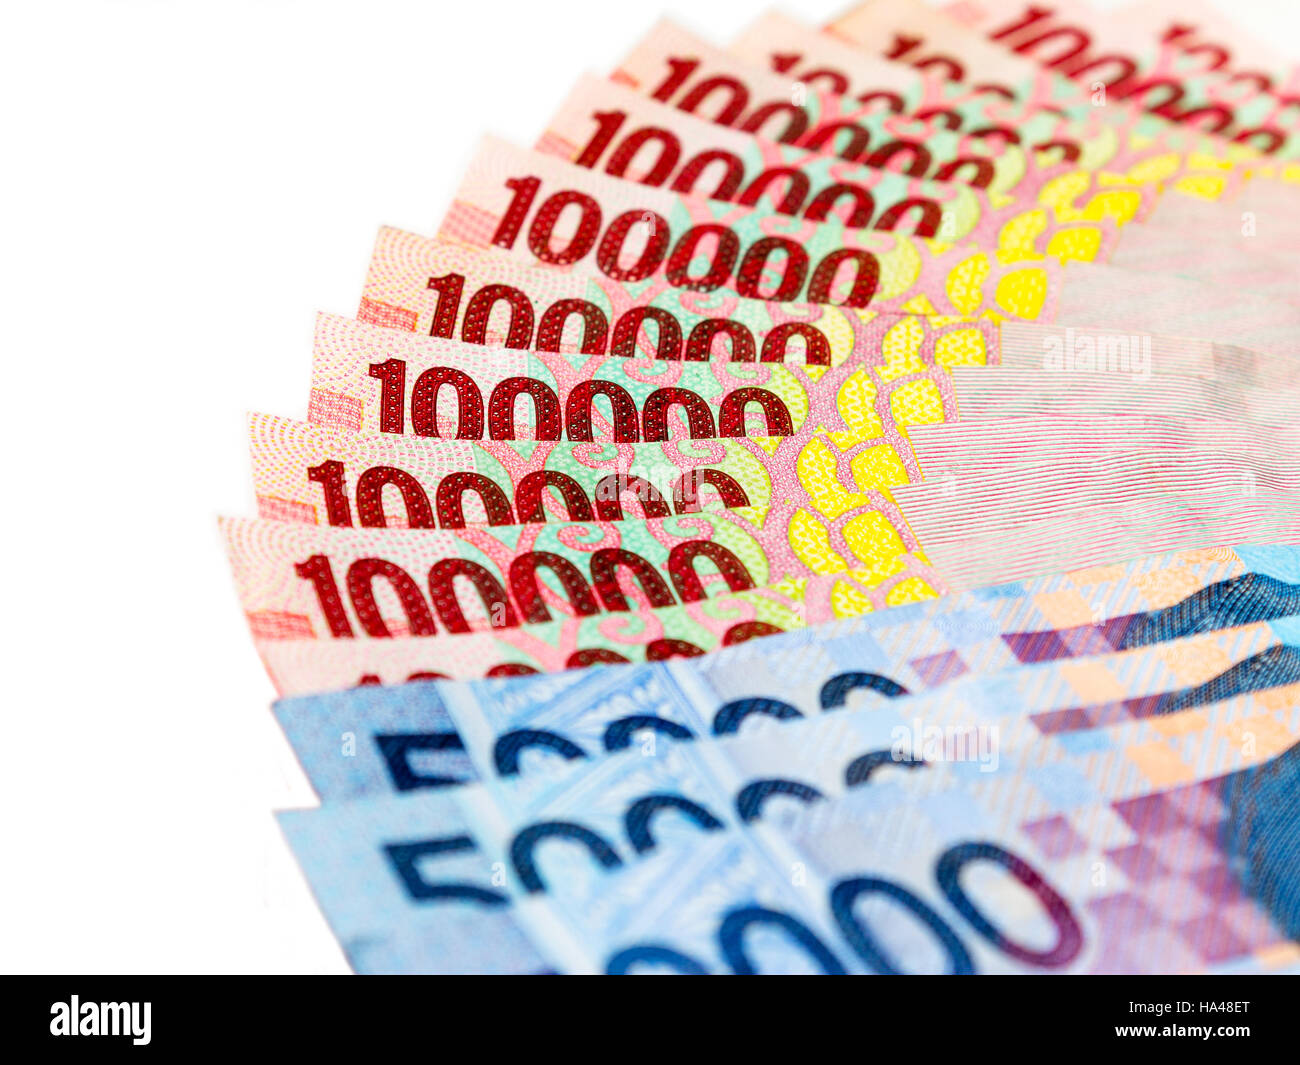 Piles of Indonesian Rupiah (IDR) banknotes on the white background. - Stock Image